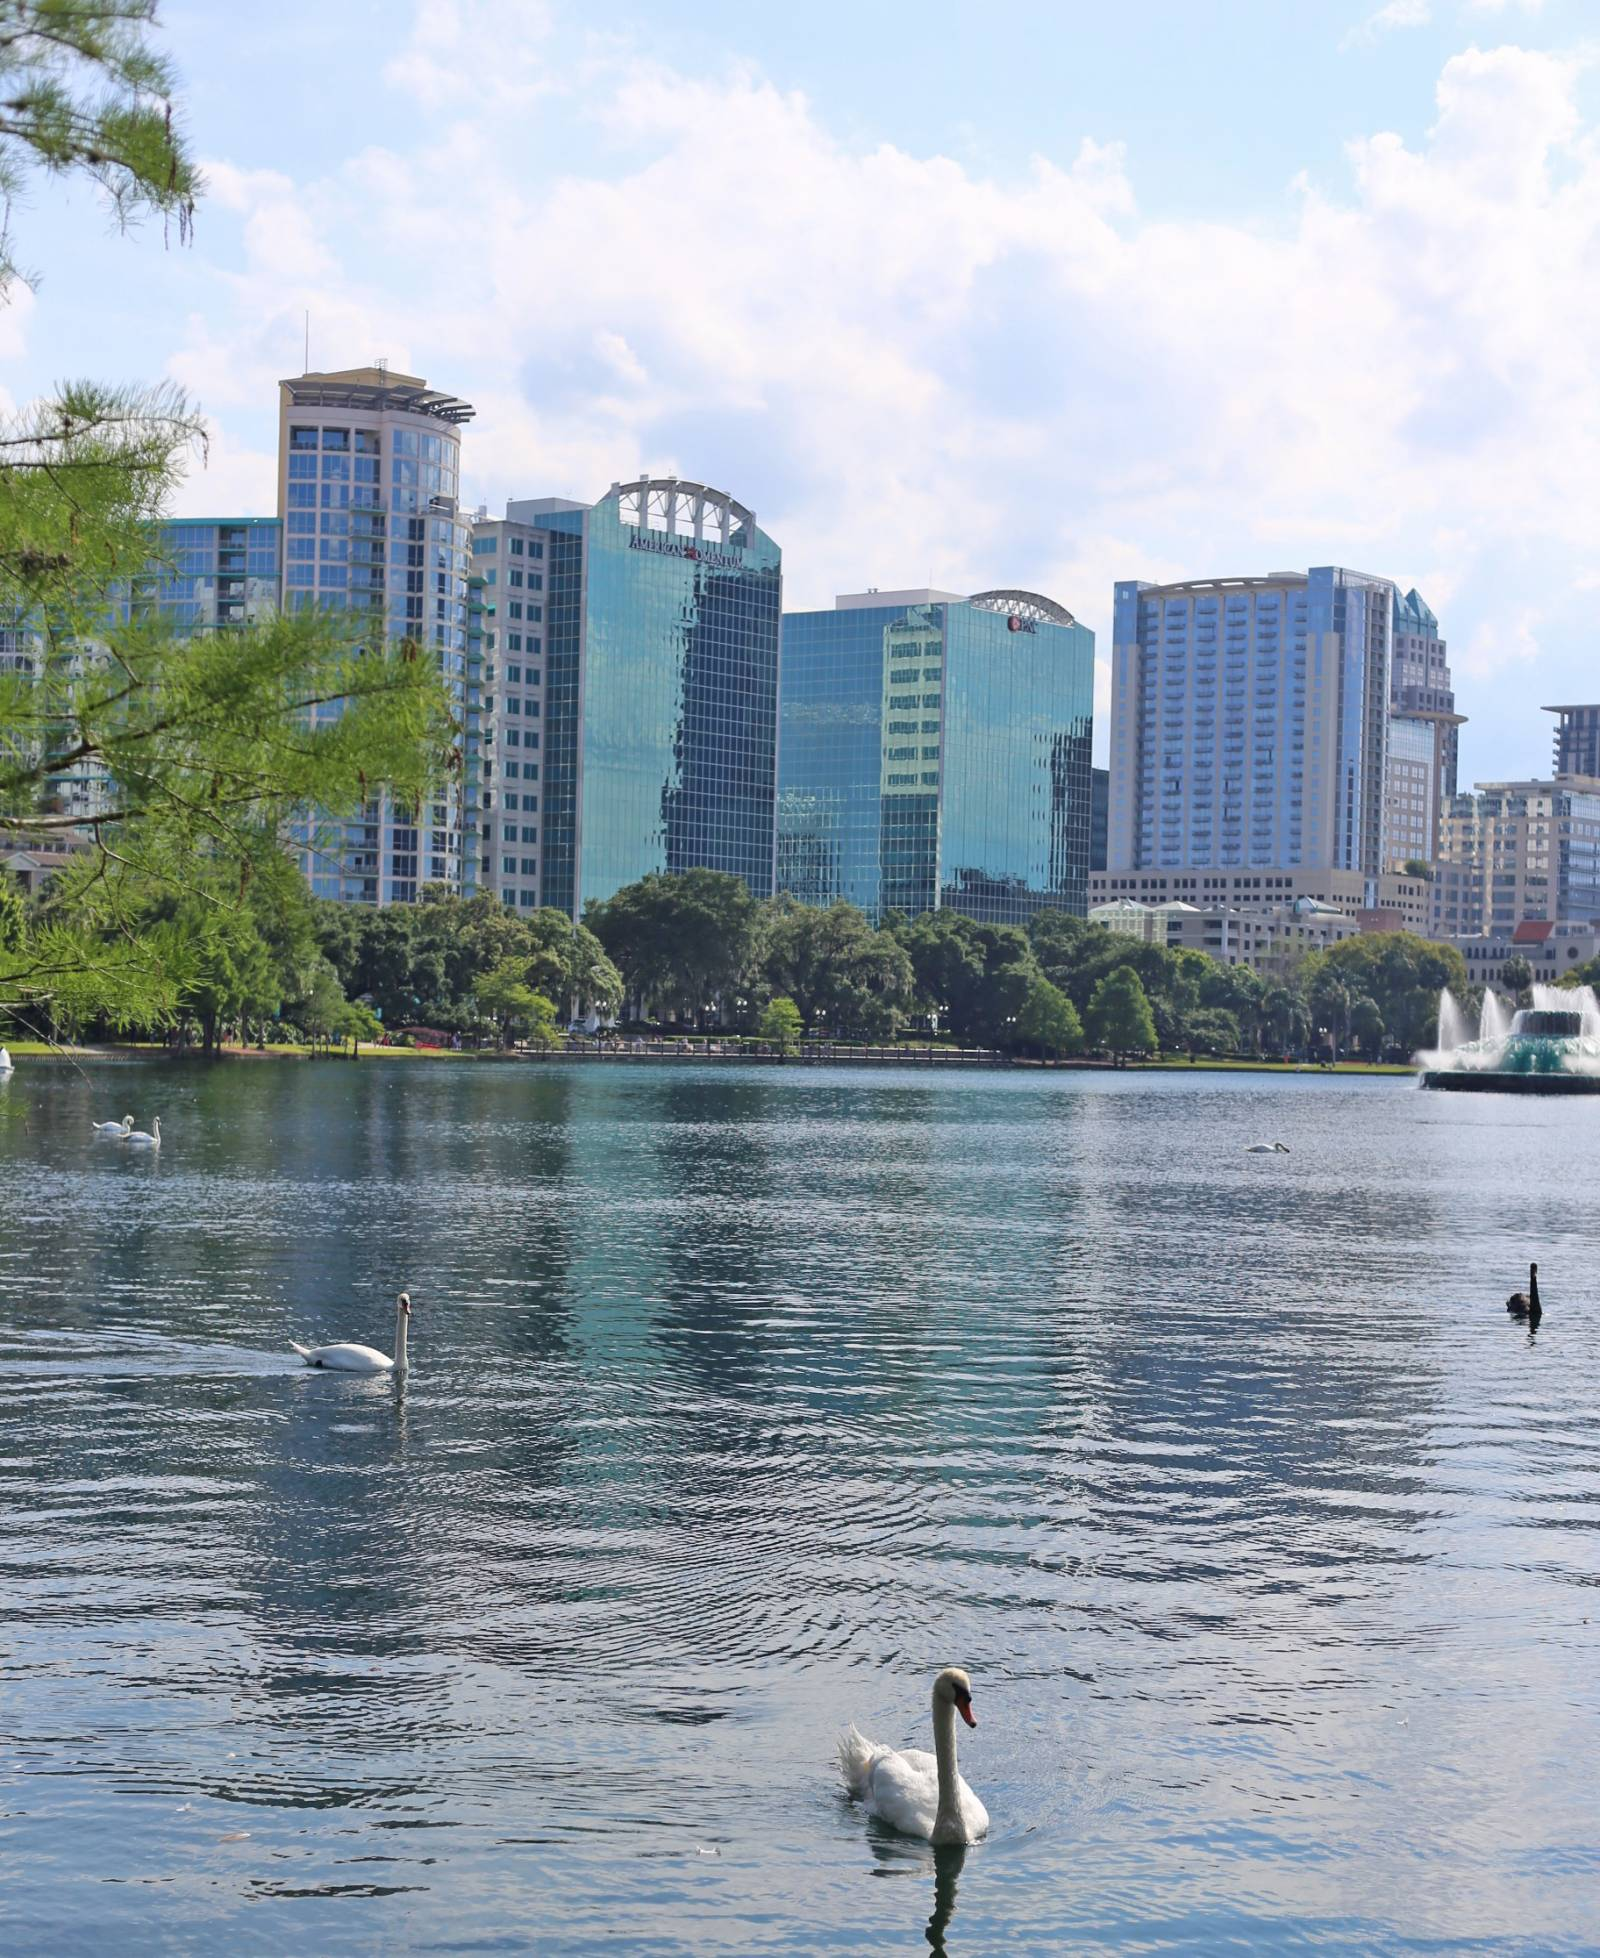 the best places to visit in orlando, florida | Lake Eola | what to do in orlando | Living in orlando | Mash Elle beauty blogger | palm trees | Florida